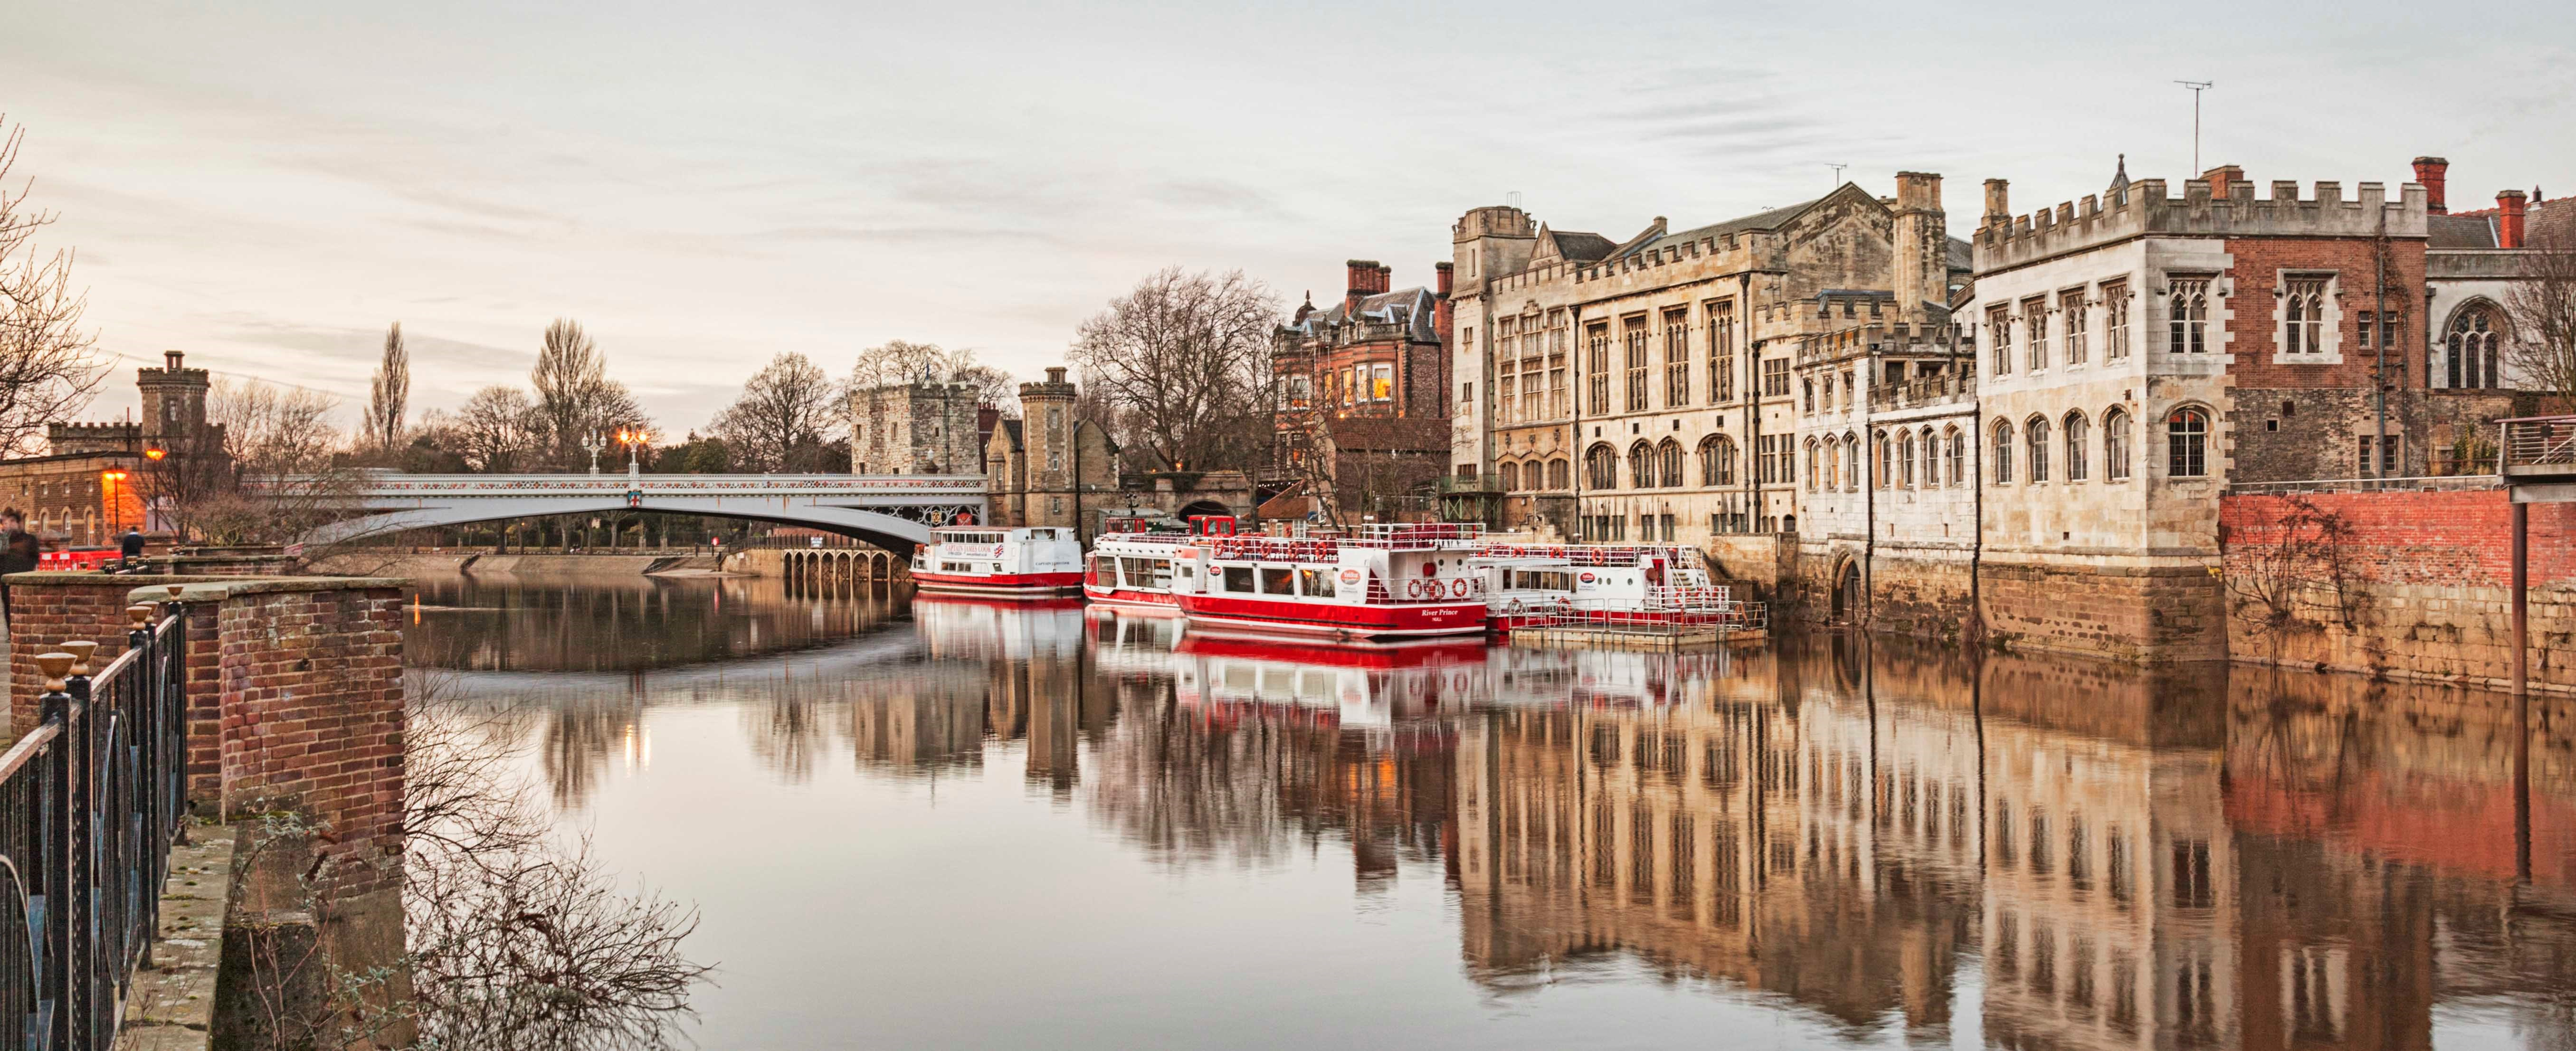 York: Top 10 places to eat and drink